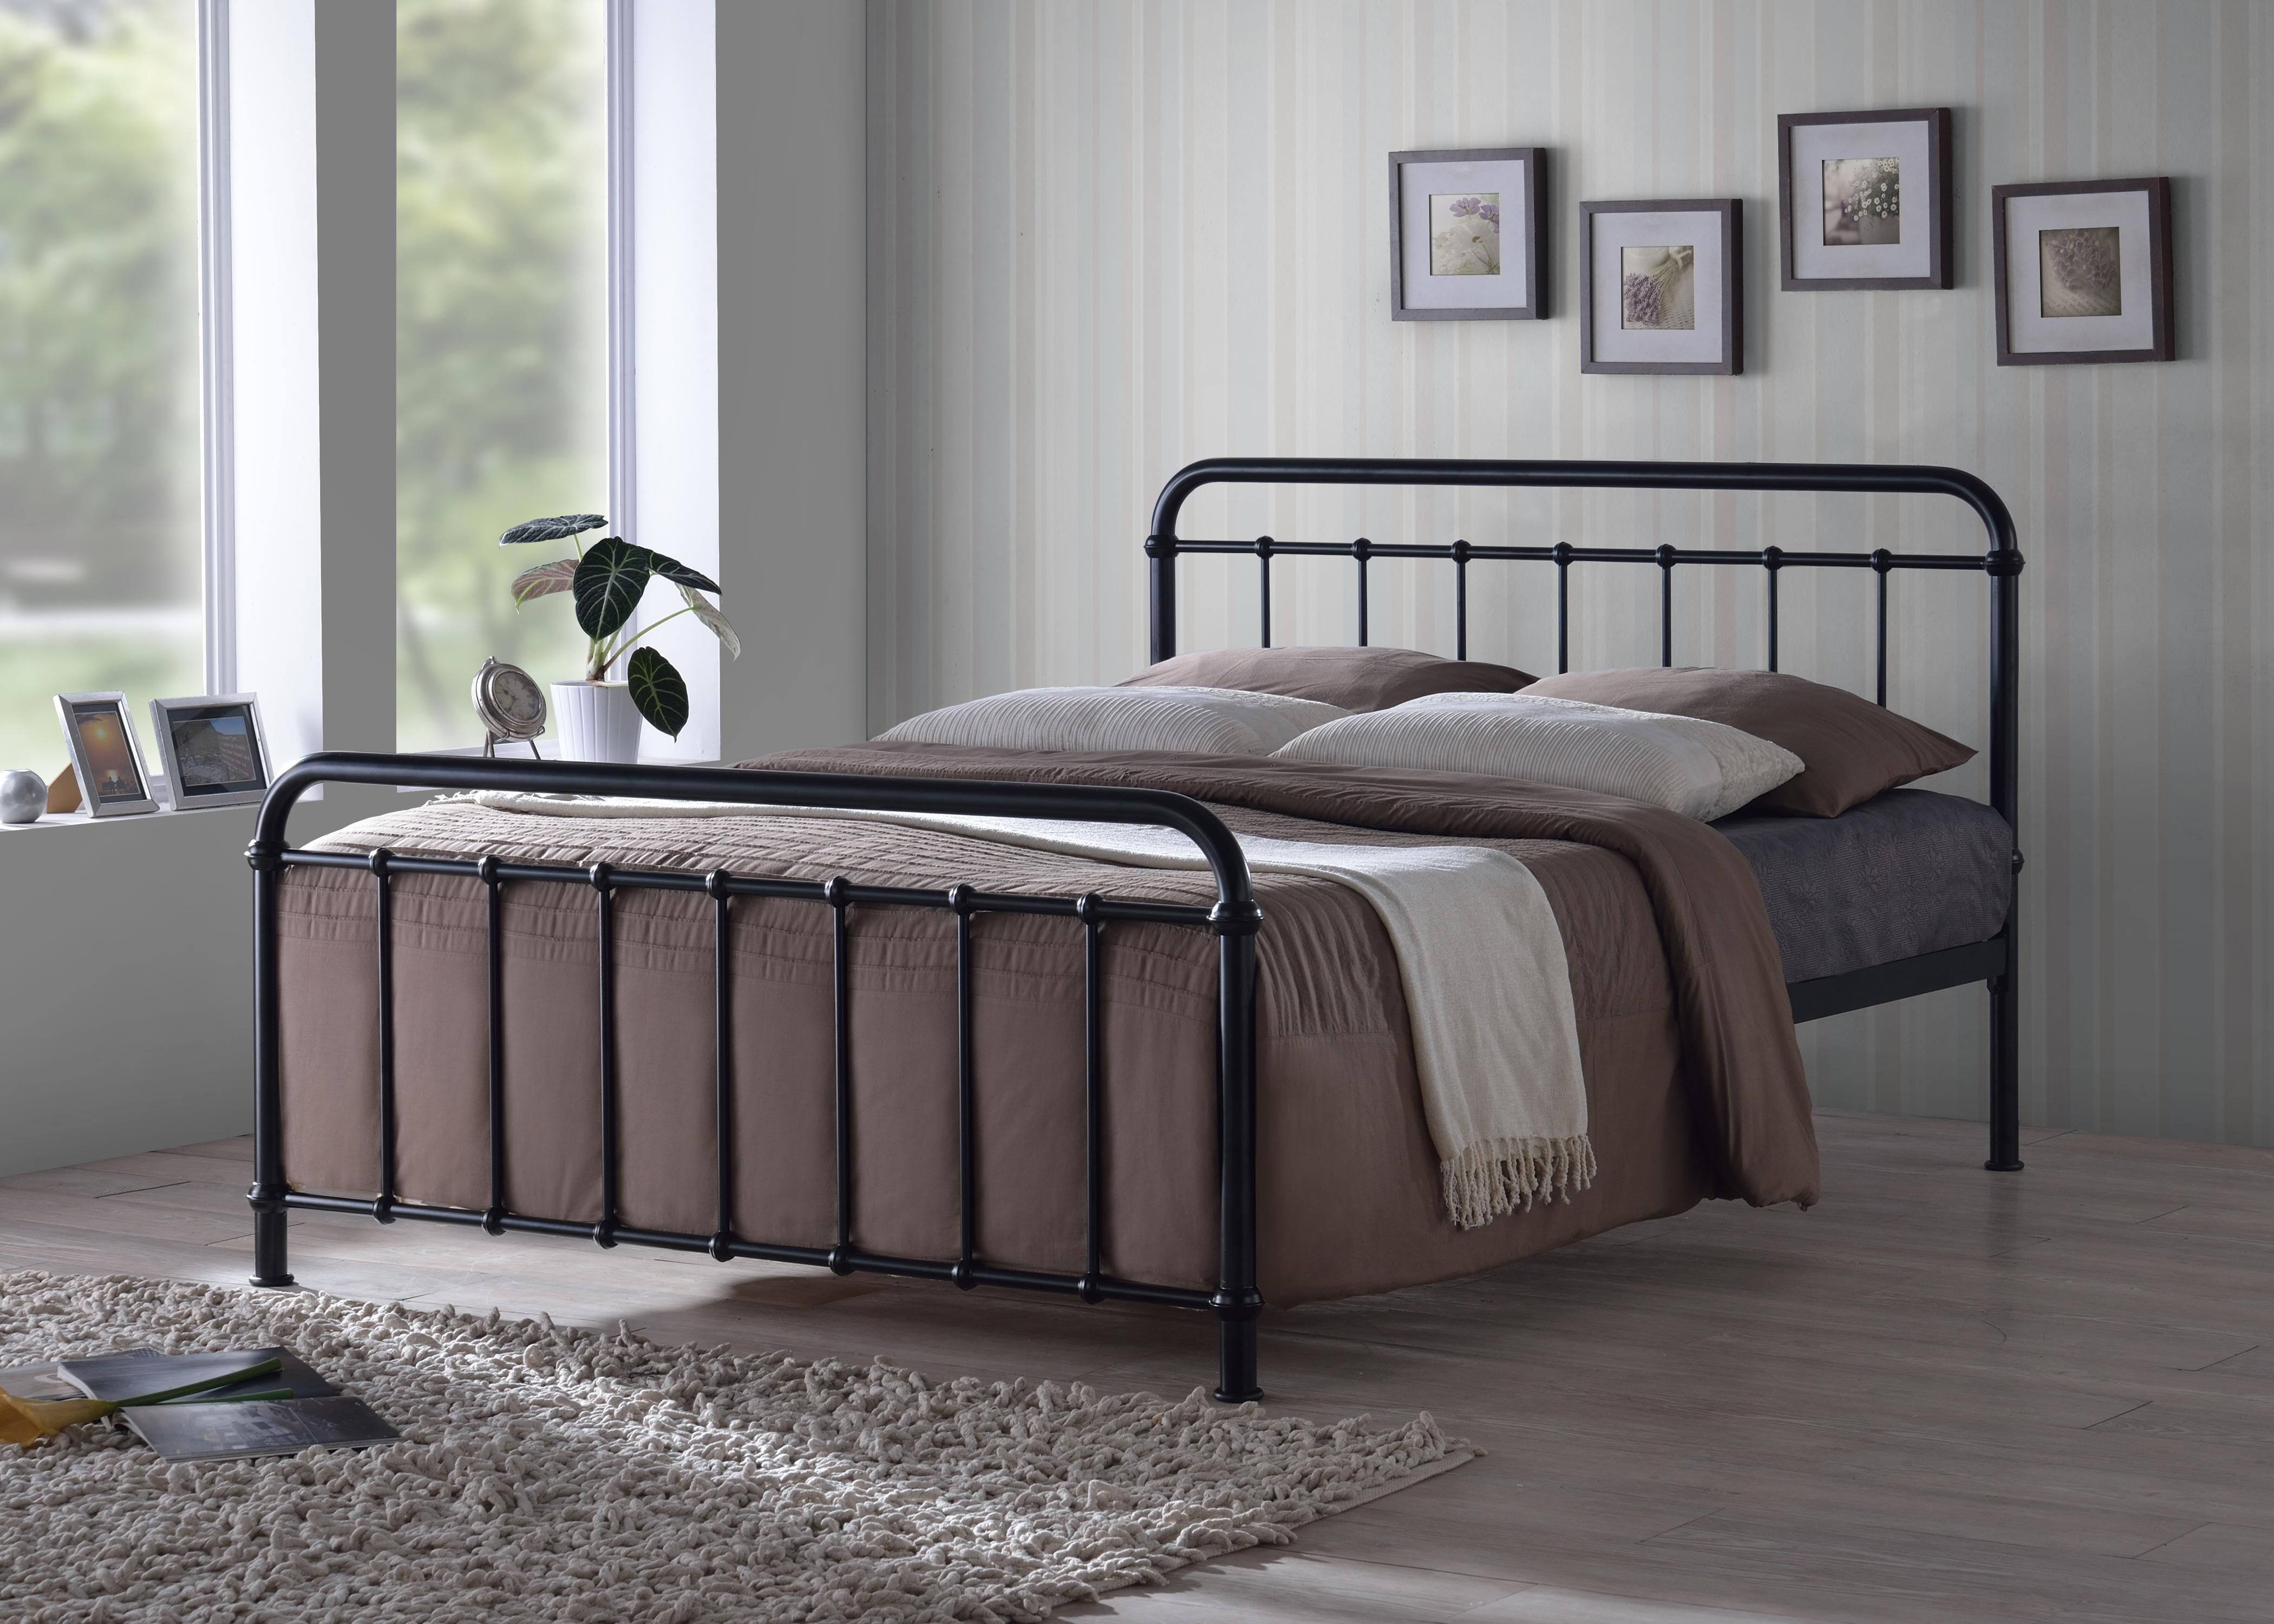 Choosing Option To Buy Kinds Of Metal Beds Because They Are Cheap